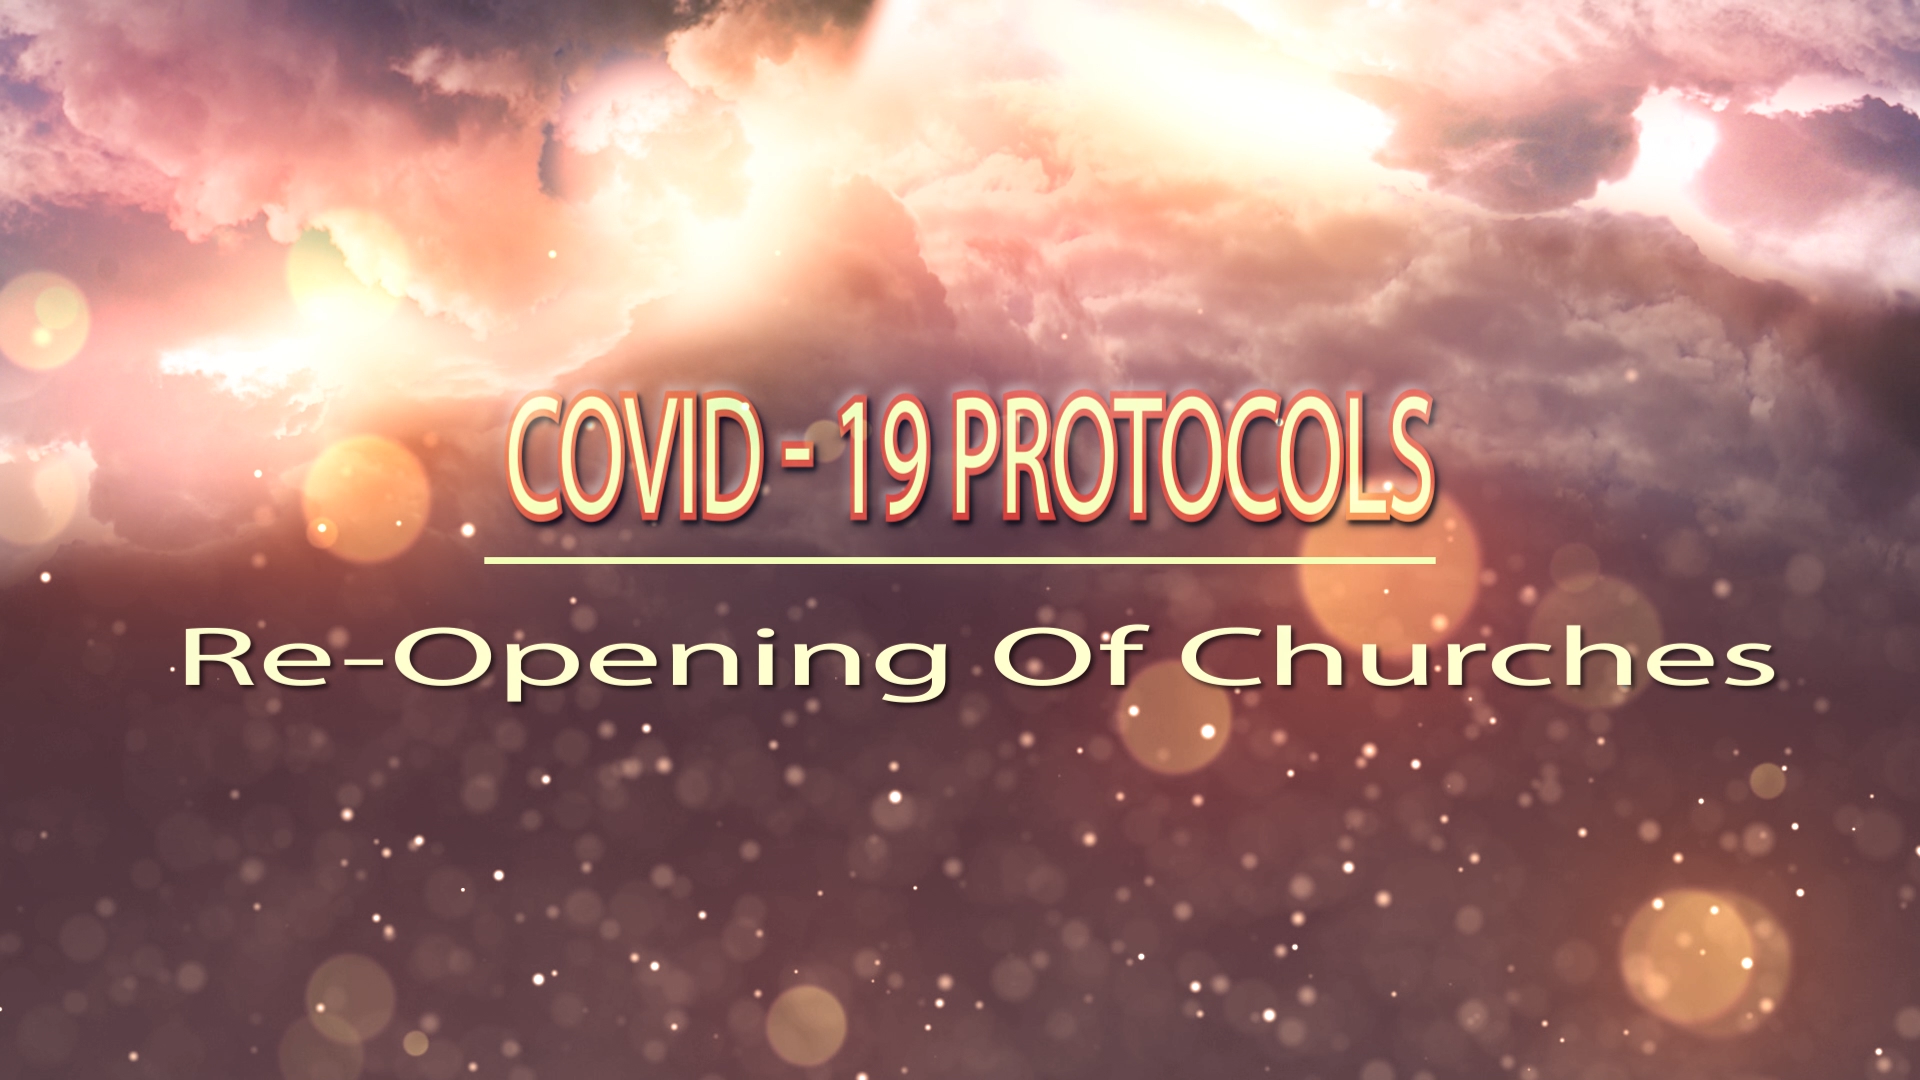 COVID-19 Protocols – Re-Opening Of Churches